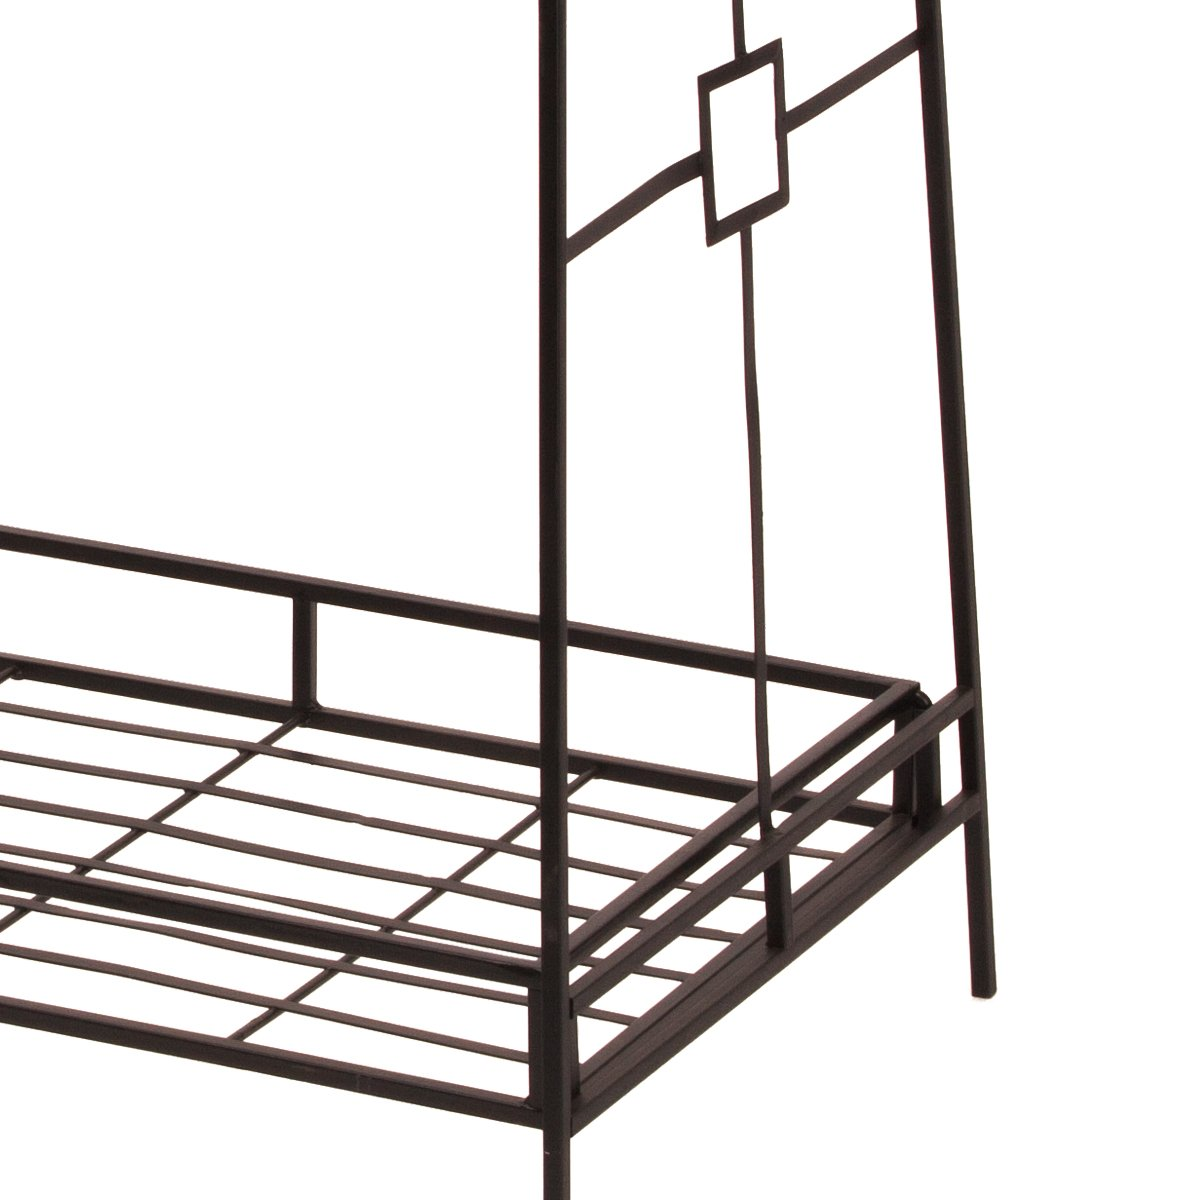 Panacea Products Forged 3-Tier Plant Stande Black